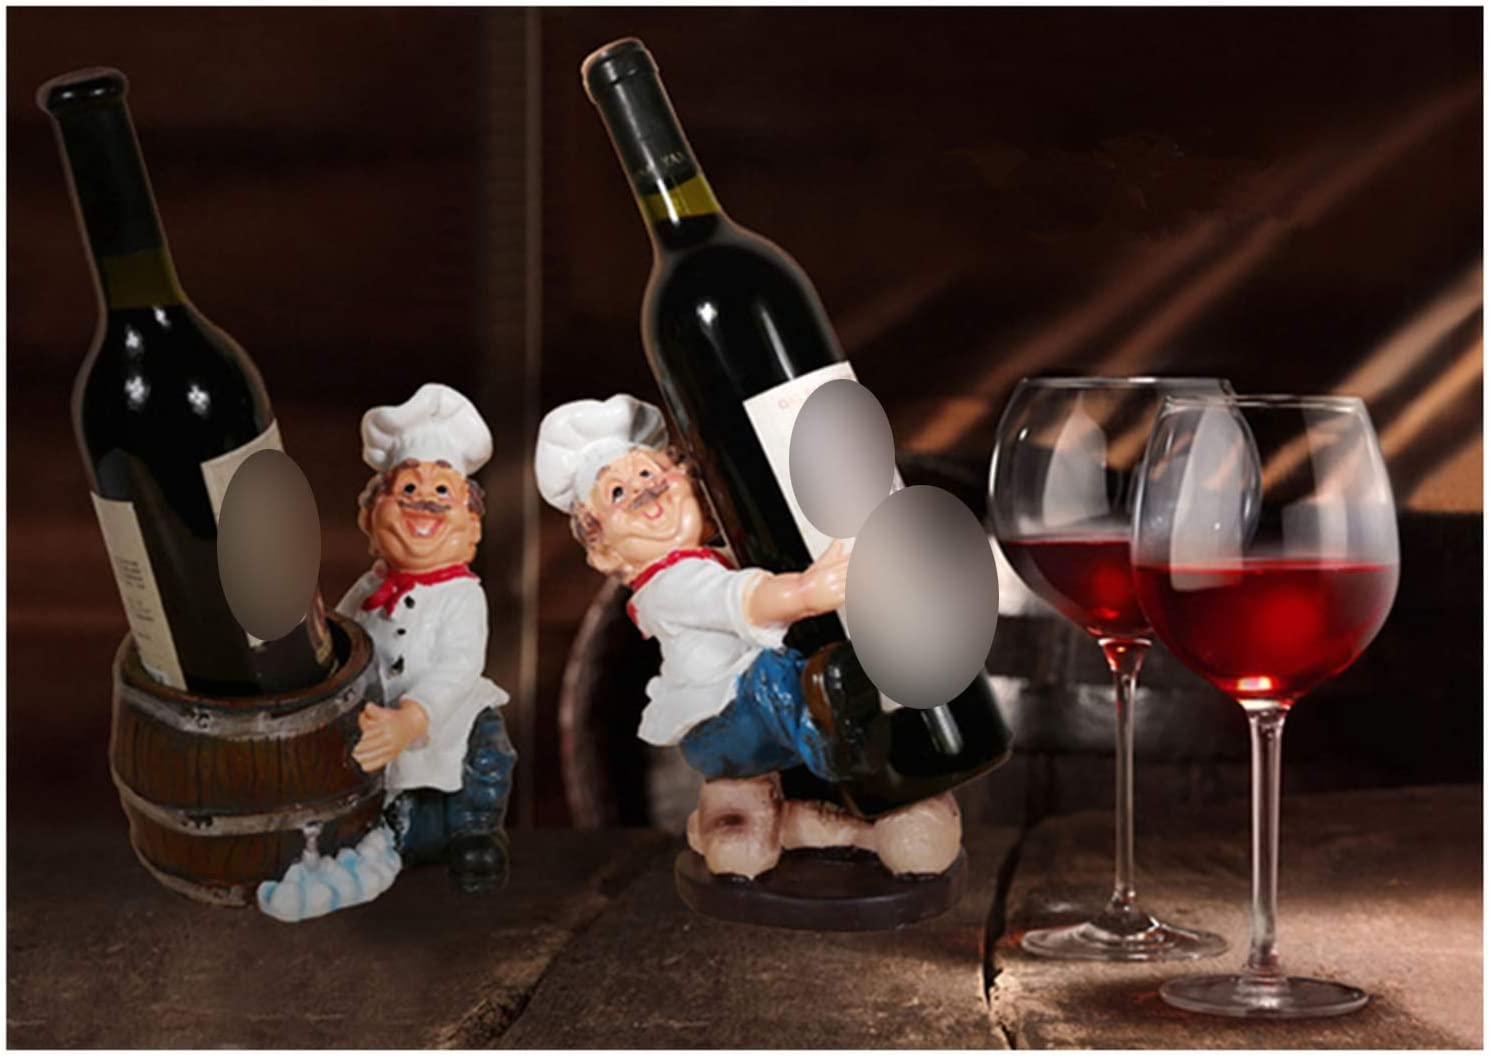 Brilliant-Store French Chef Brother Figurines Chef Miniatures Resin Wine Rocks Wine Holder Home Decor Office Decoration New Year Gift,2,7x4.9x7.8 Inch